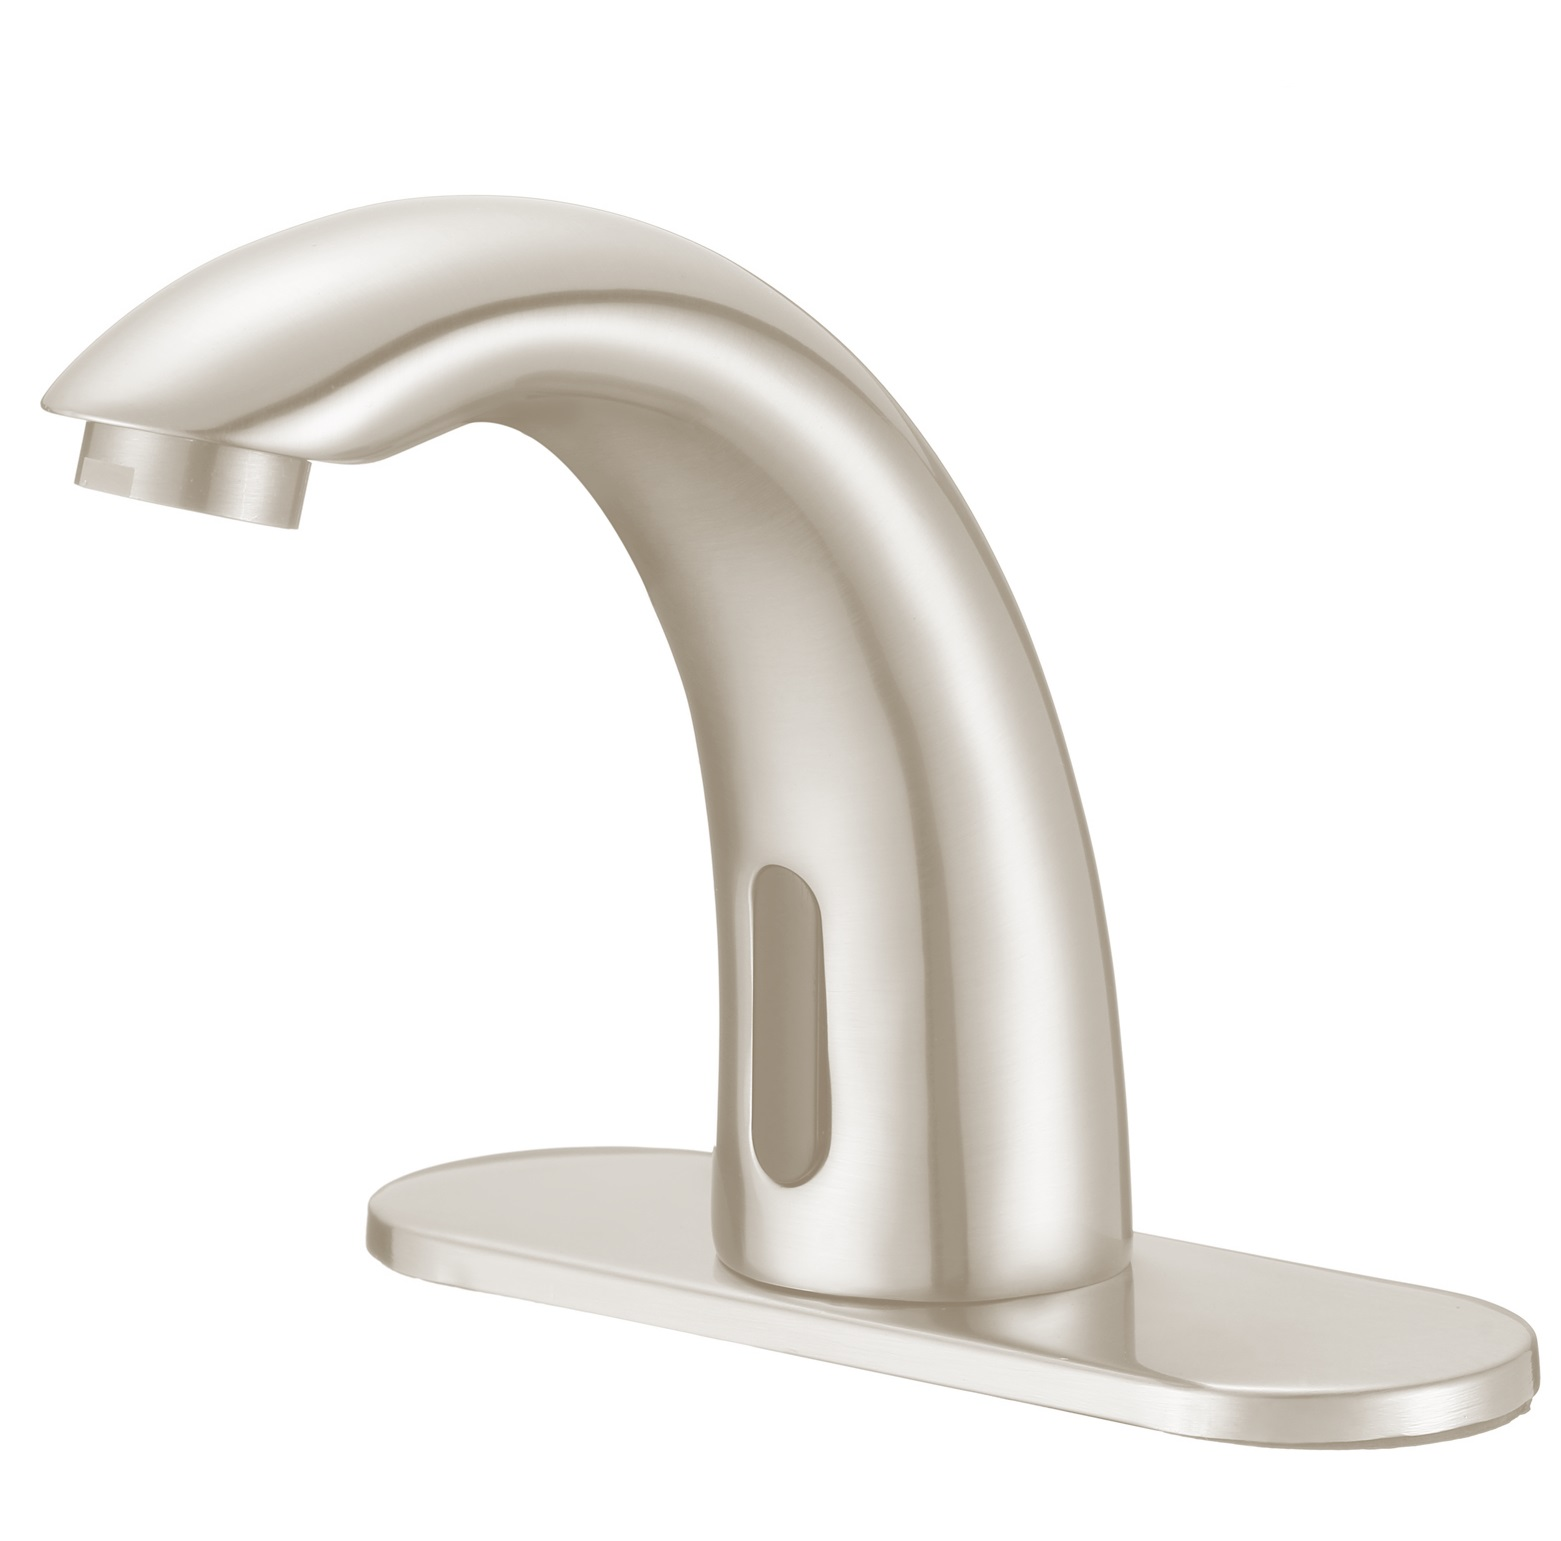 talo tile peel product faucets faucet touchless touch unique smarttouch